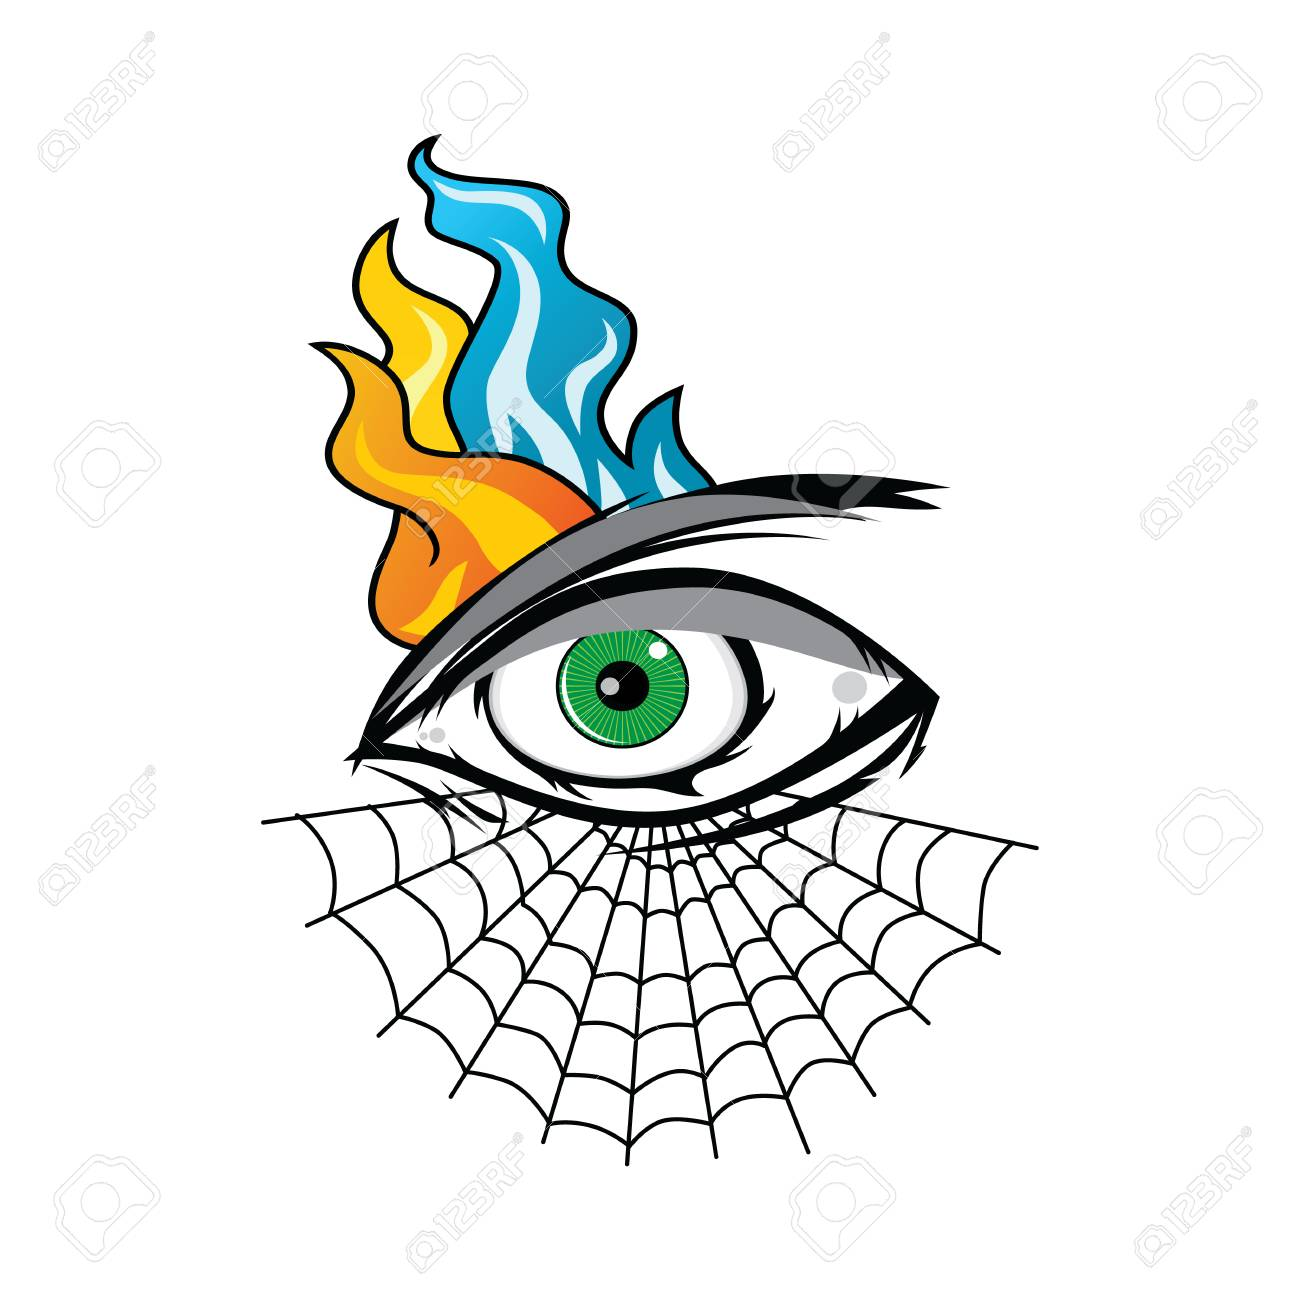 1300x1300 Angry Eye With Spiderweb Tattoo Cartoon Theme Vector Art